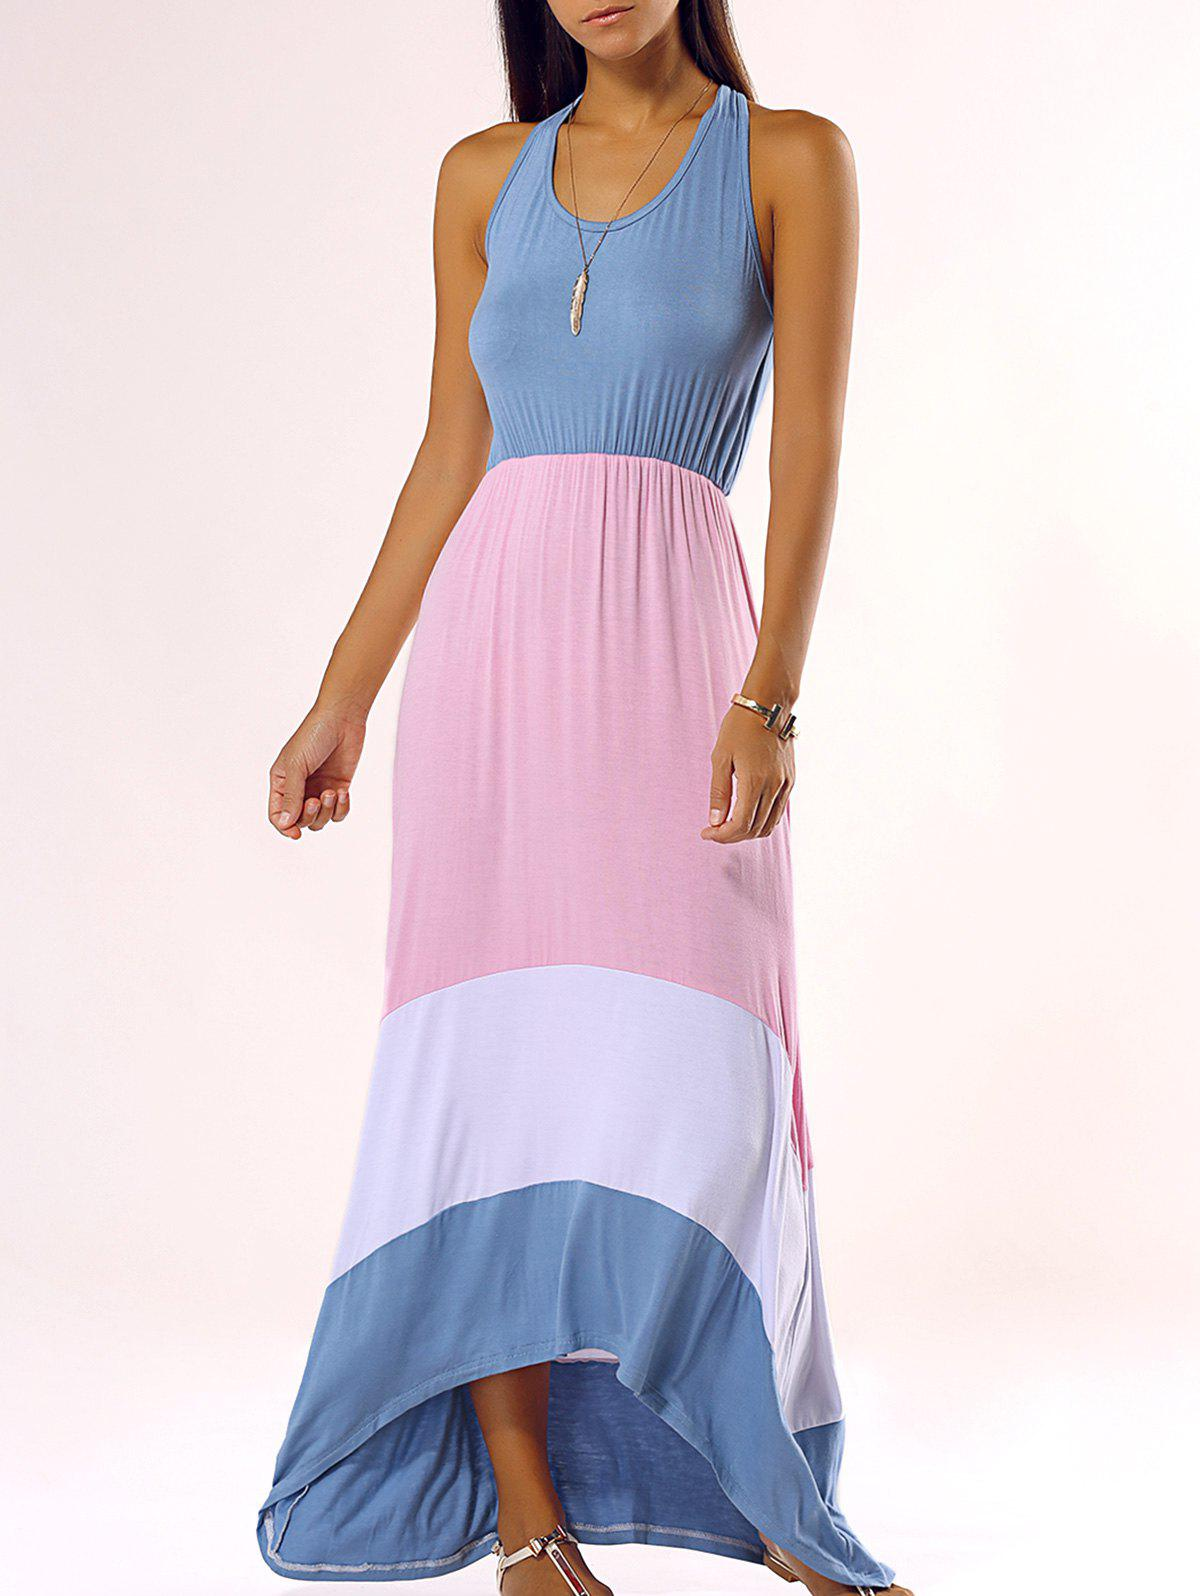 Stylish Sleeveless Color Block Dovetail Dress - COLORMIX XL